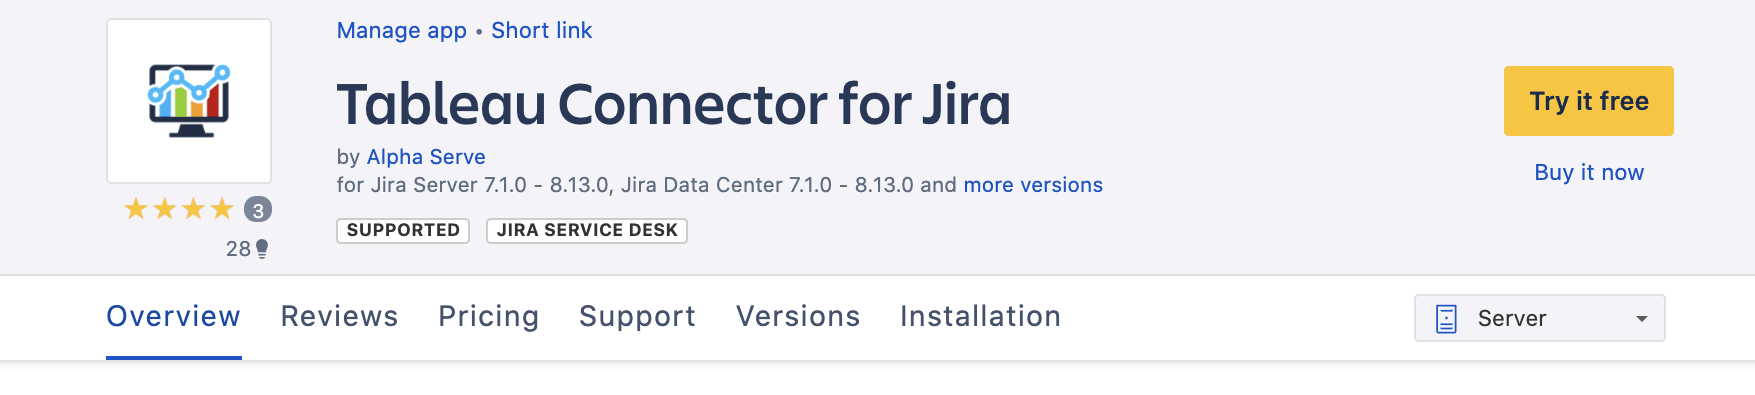 tableau connector for jira